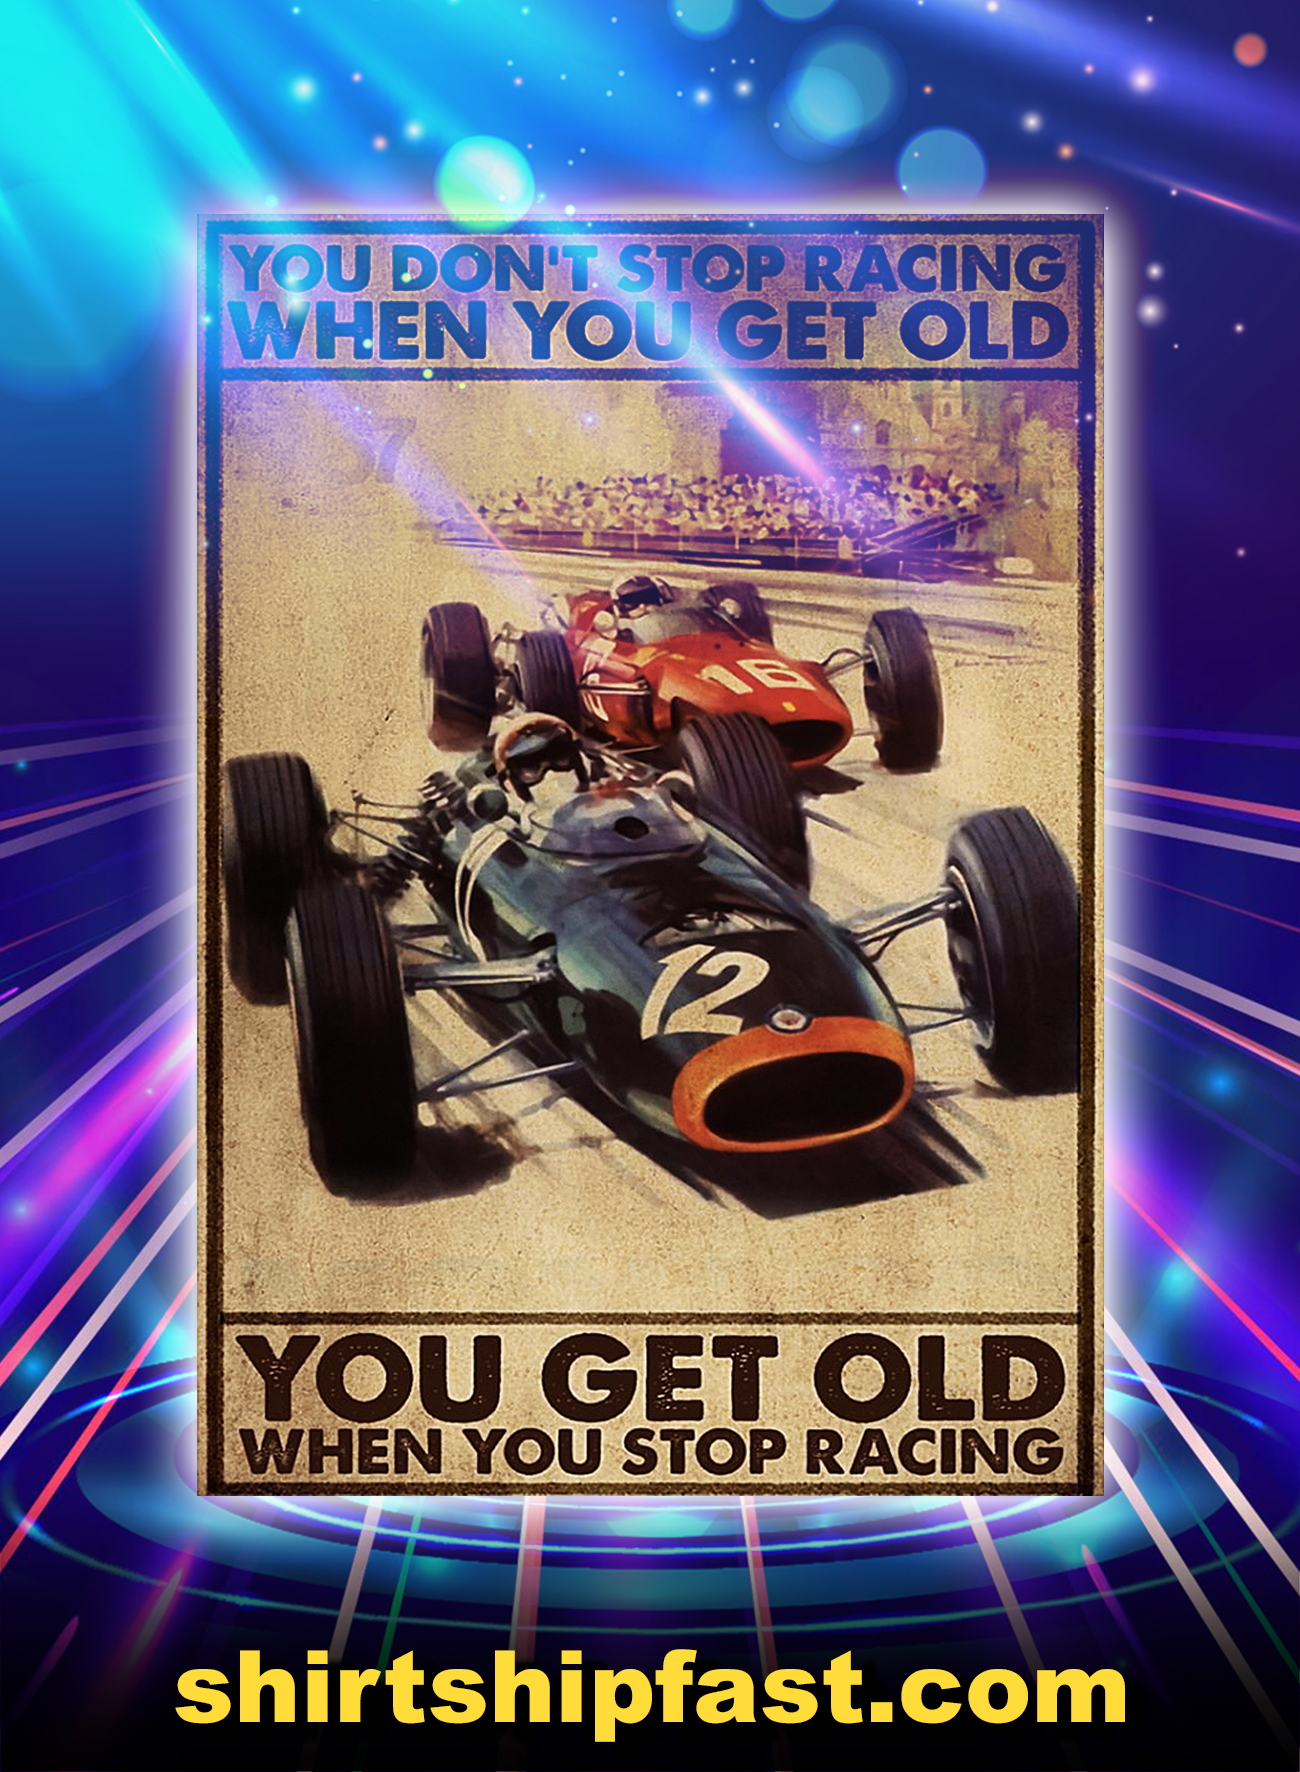 Drag racing you don't stop racing when you get old poster - A4